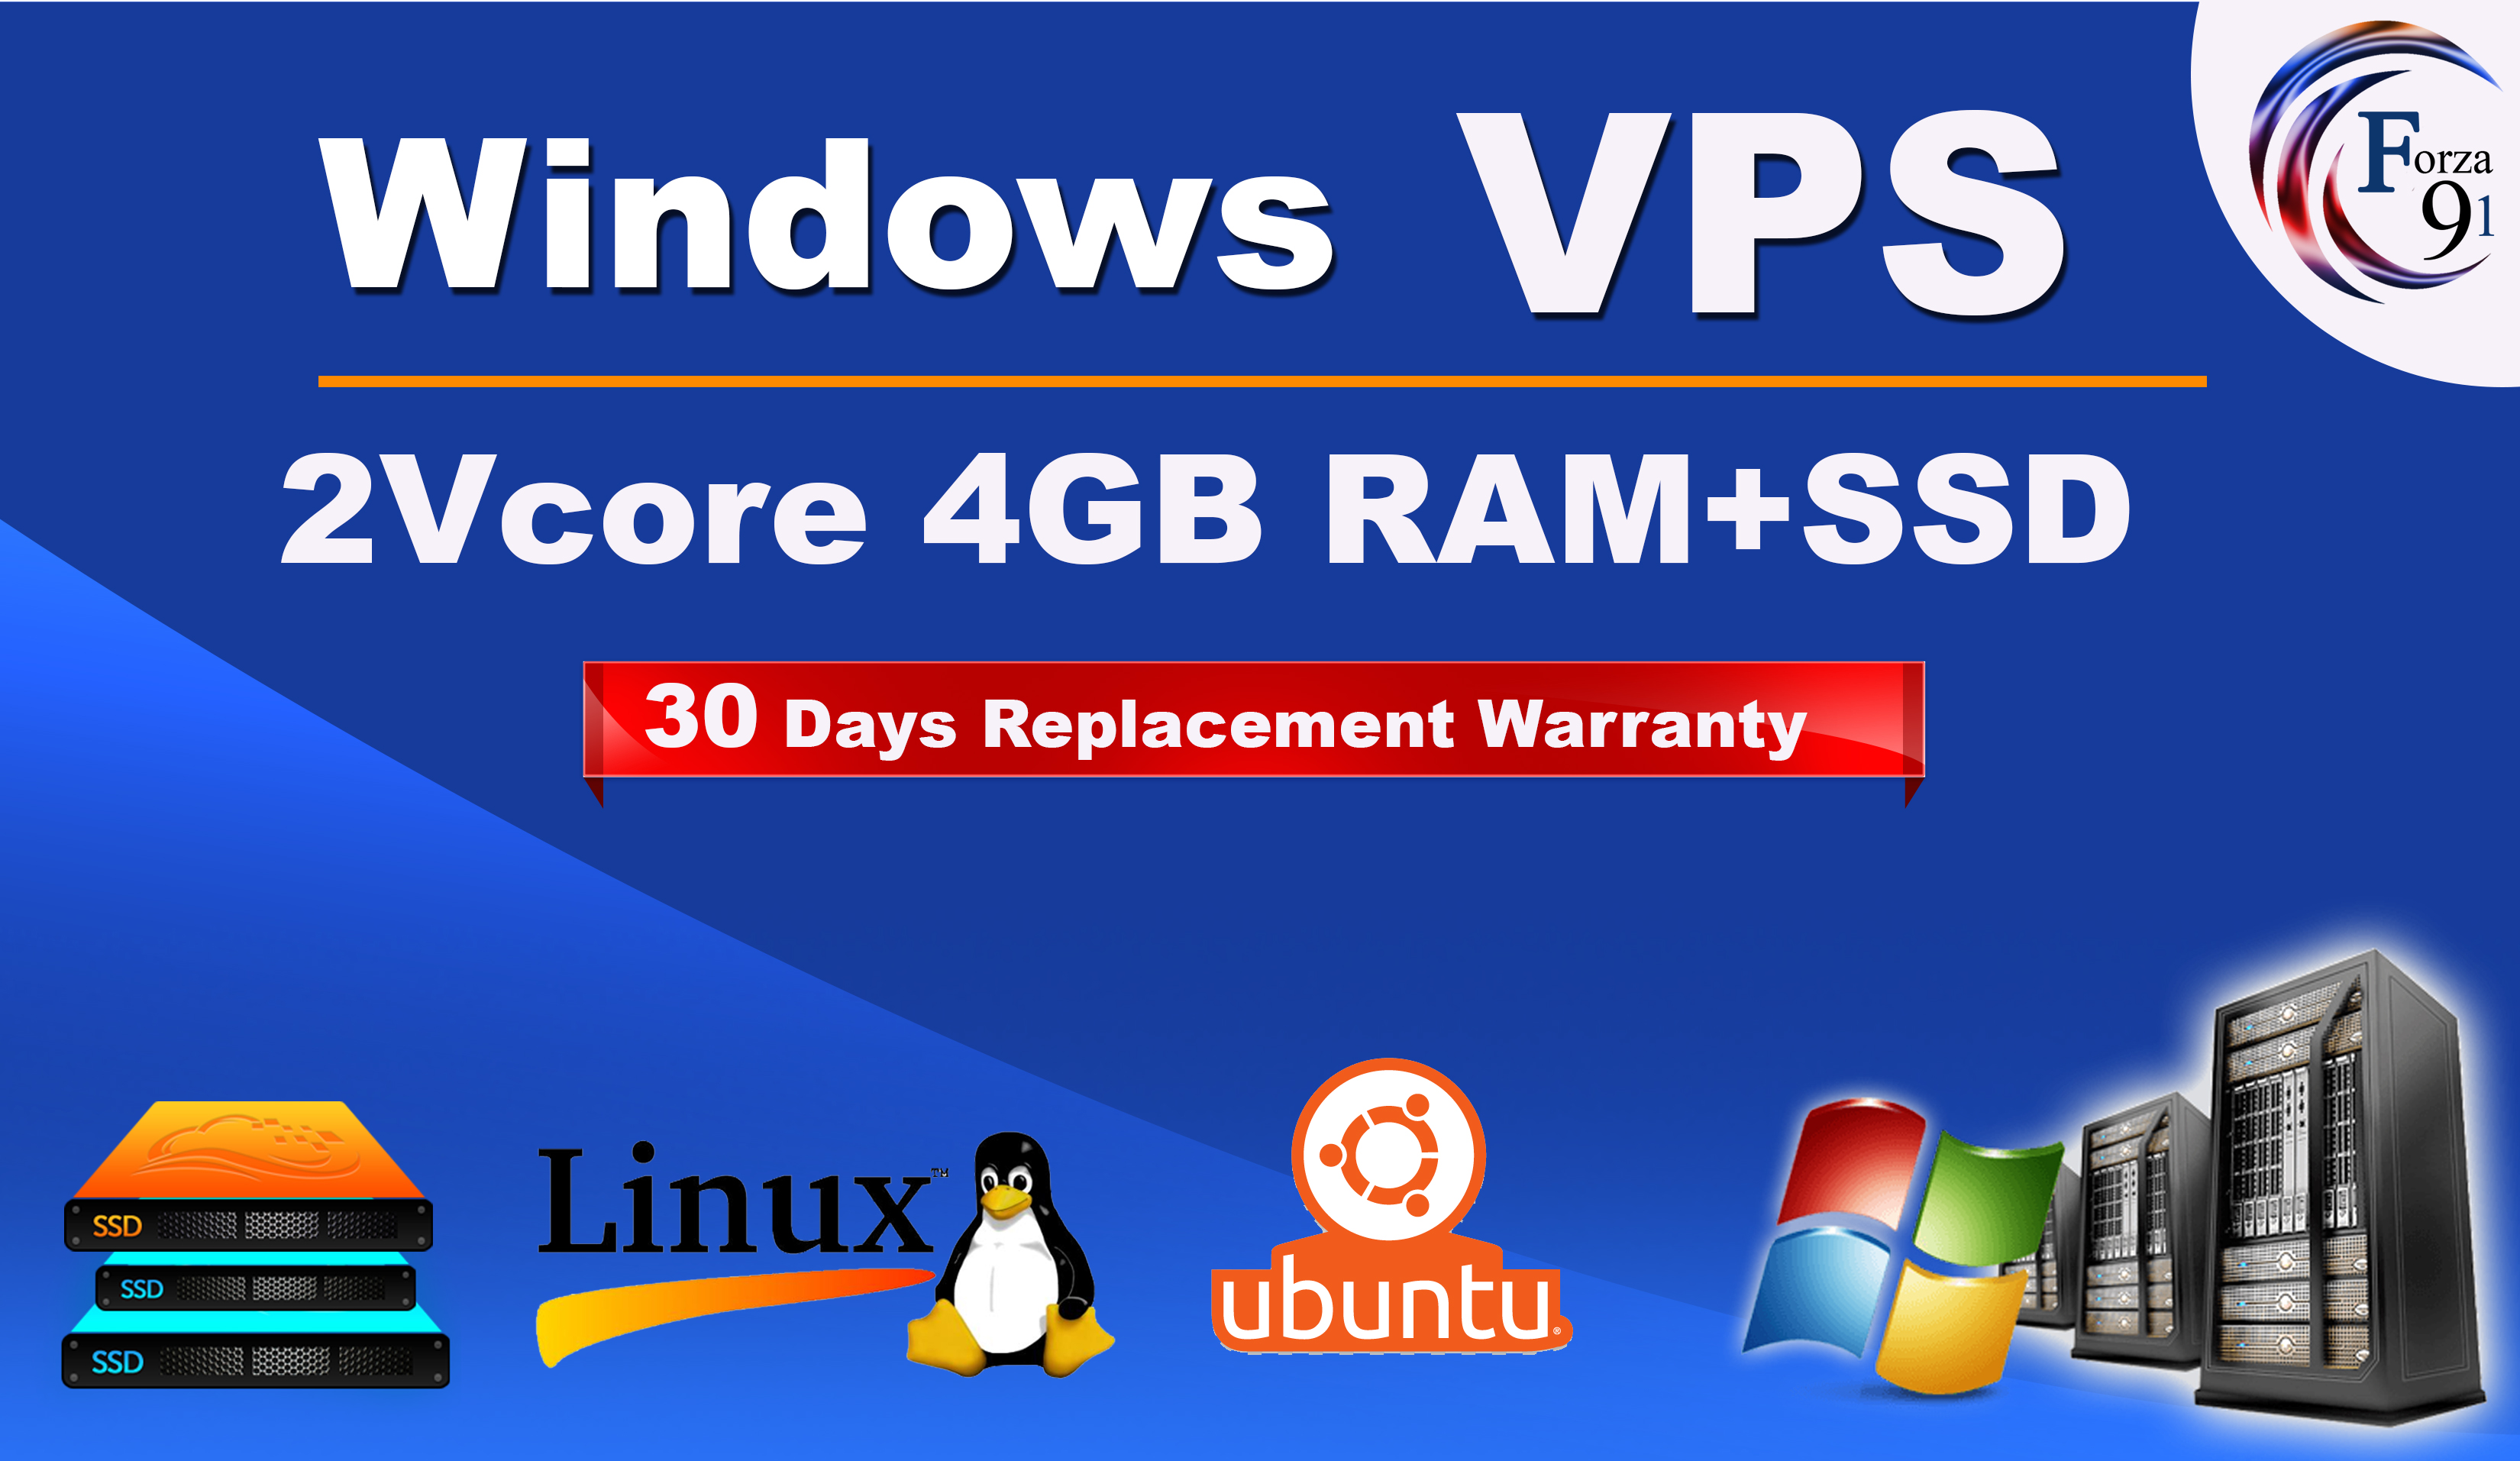 Windows - linux RDP VPS 2Vcore 4Gb VPS with SSD for 30 days